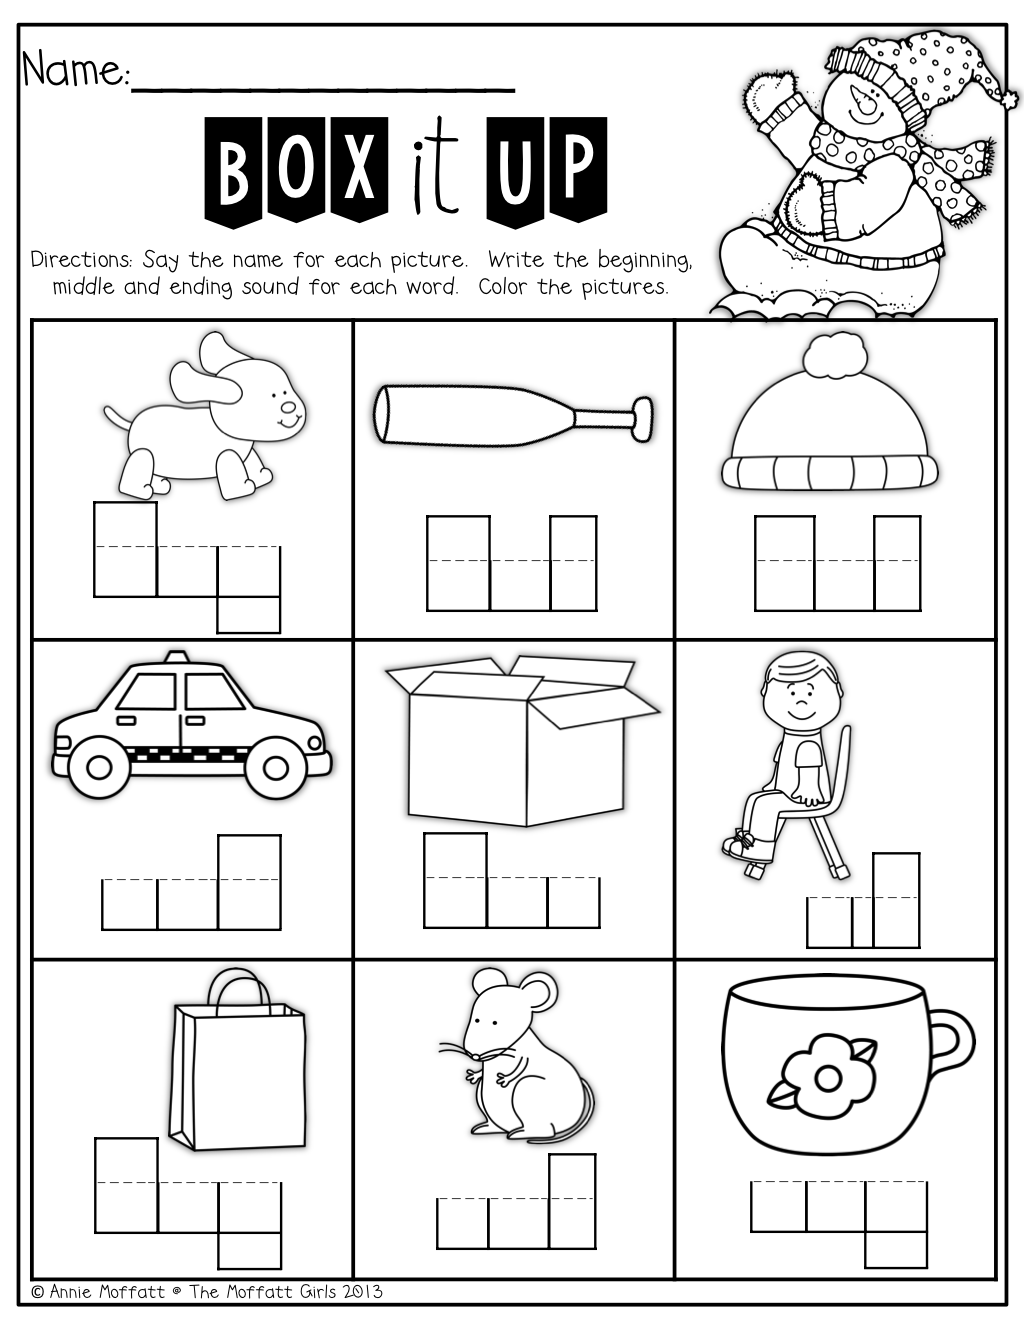 worksheet Middle Sounds Worksheets box up the words sound by perfect for kids who are learning how to